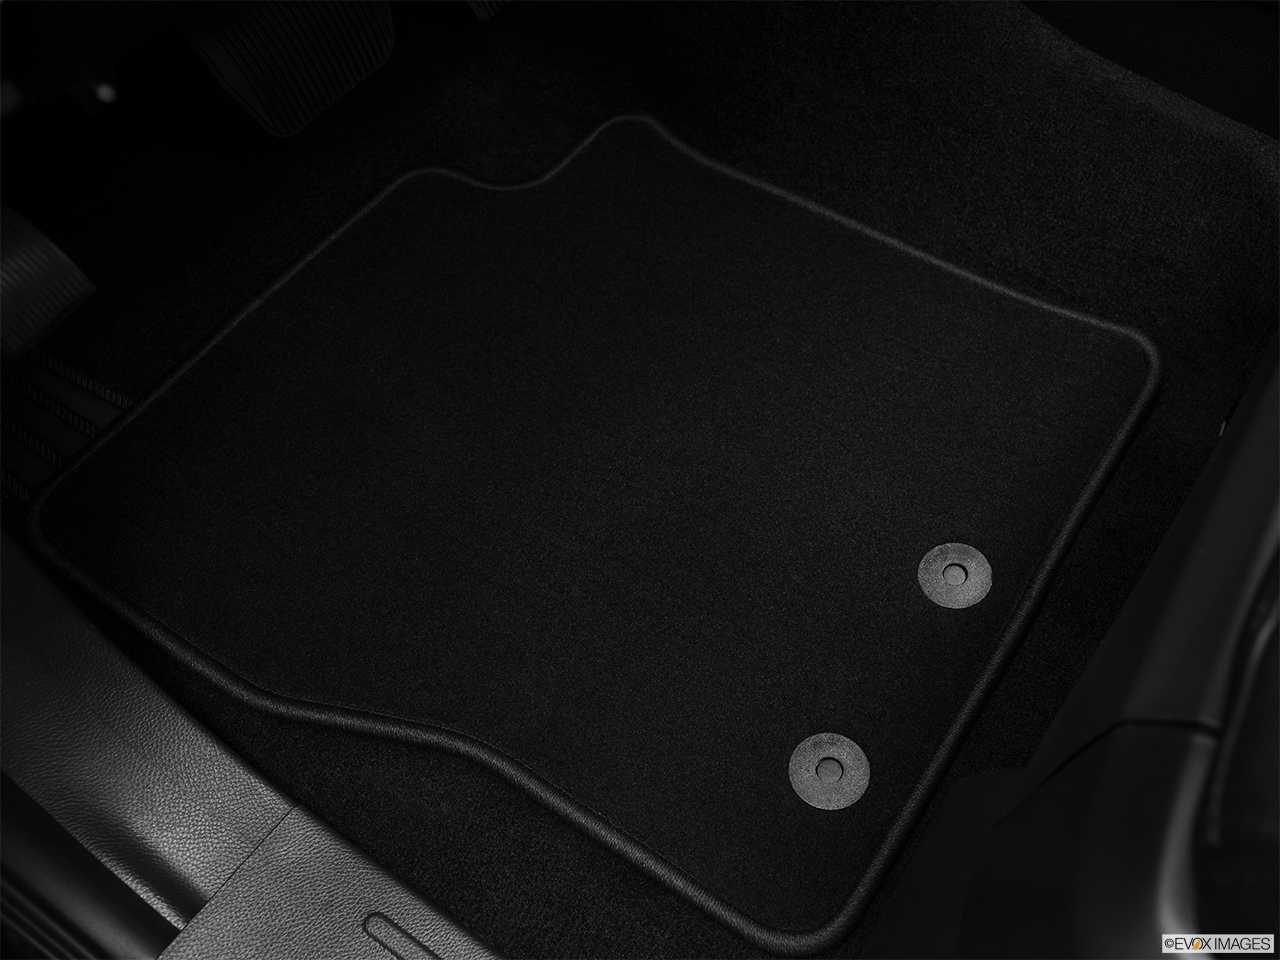 2012 Lincoln Navigator Base Driver's floor mat and pedals. Mid-seat level from outside looking in.